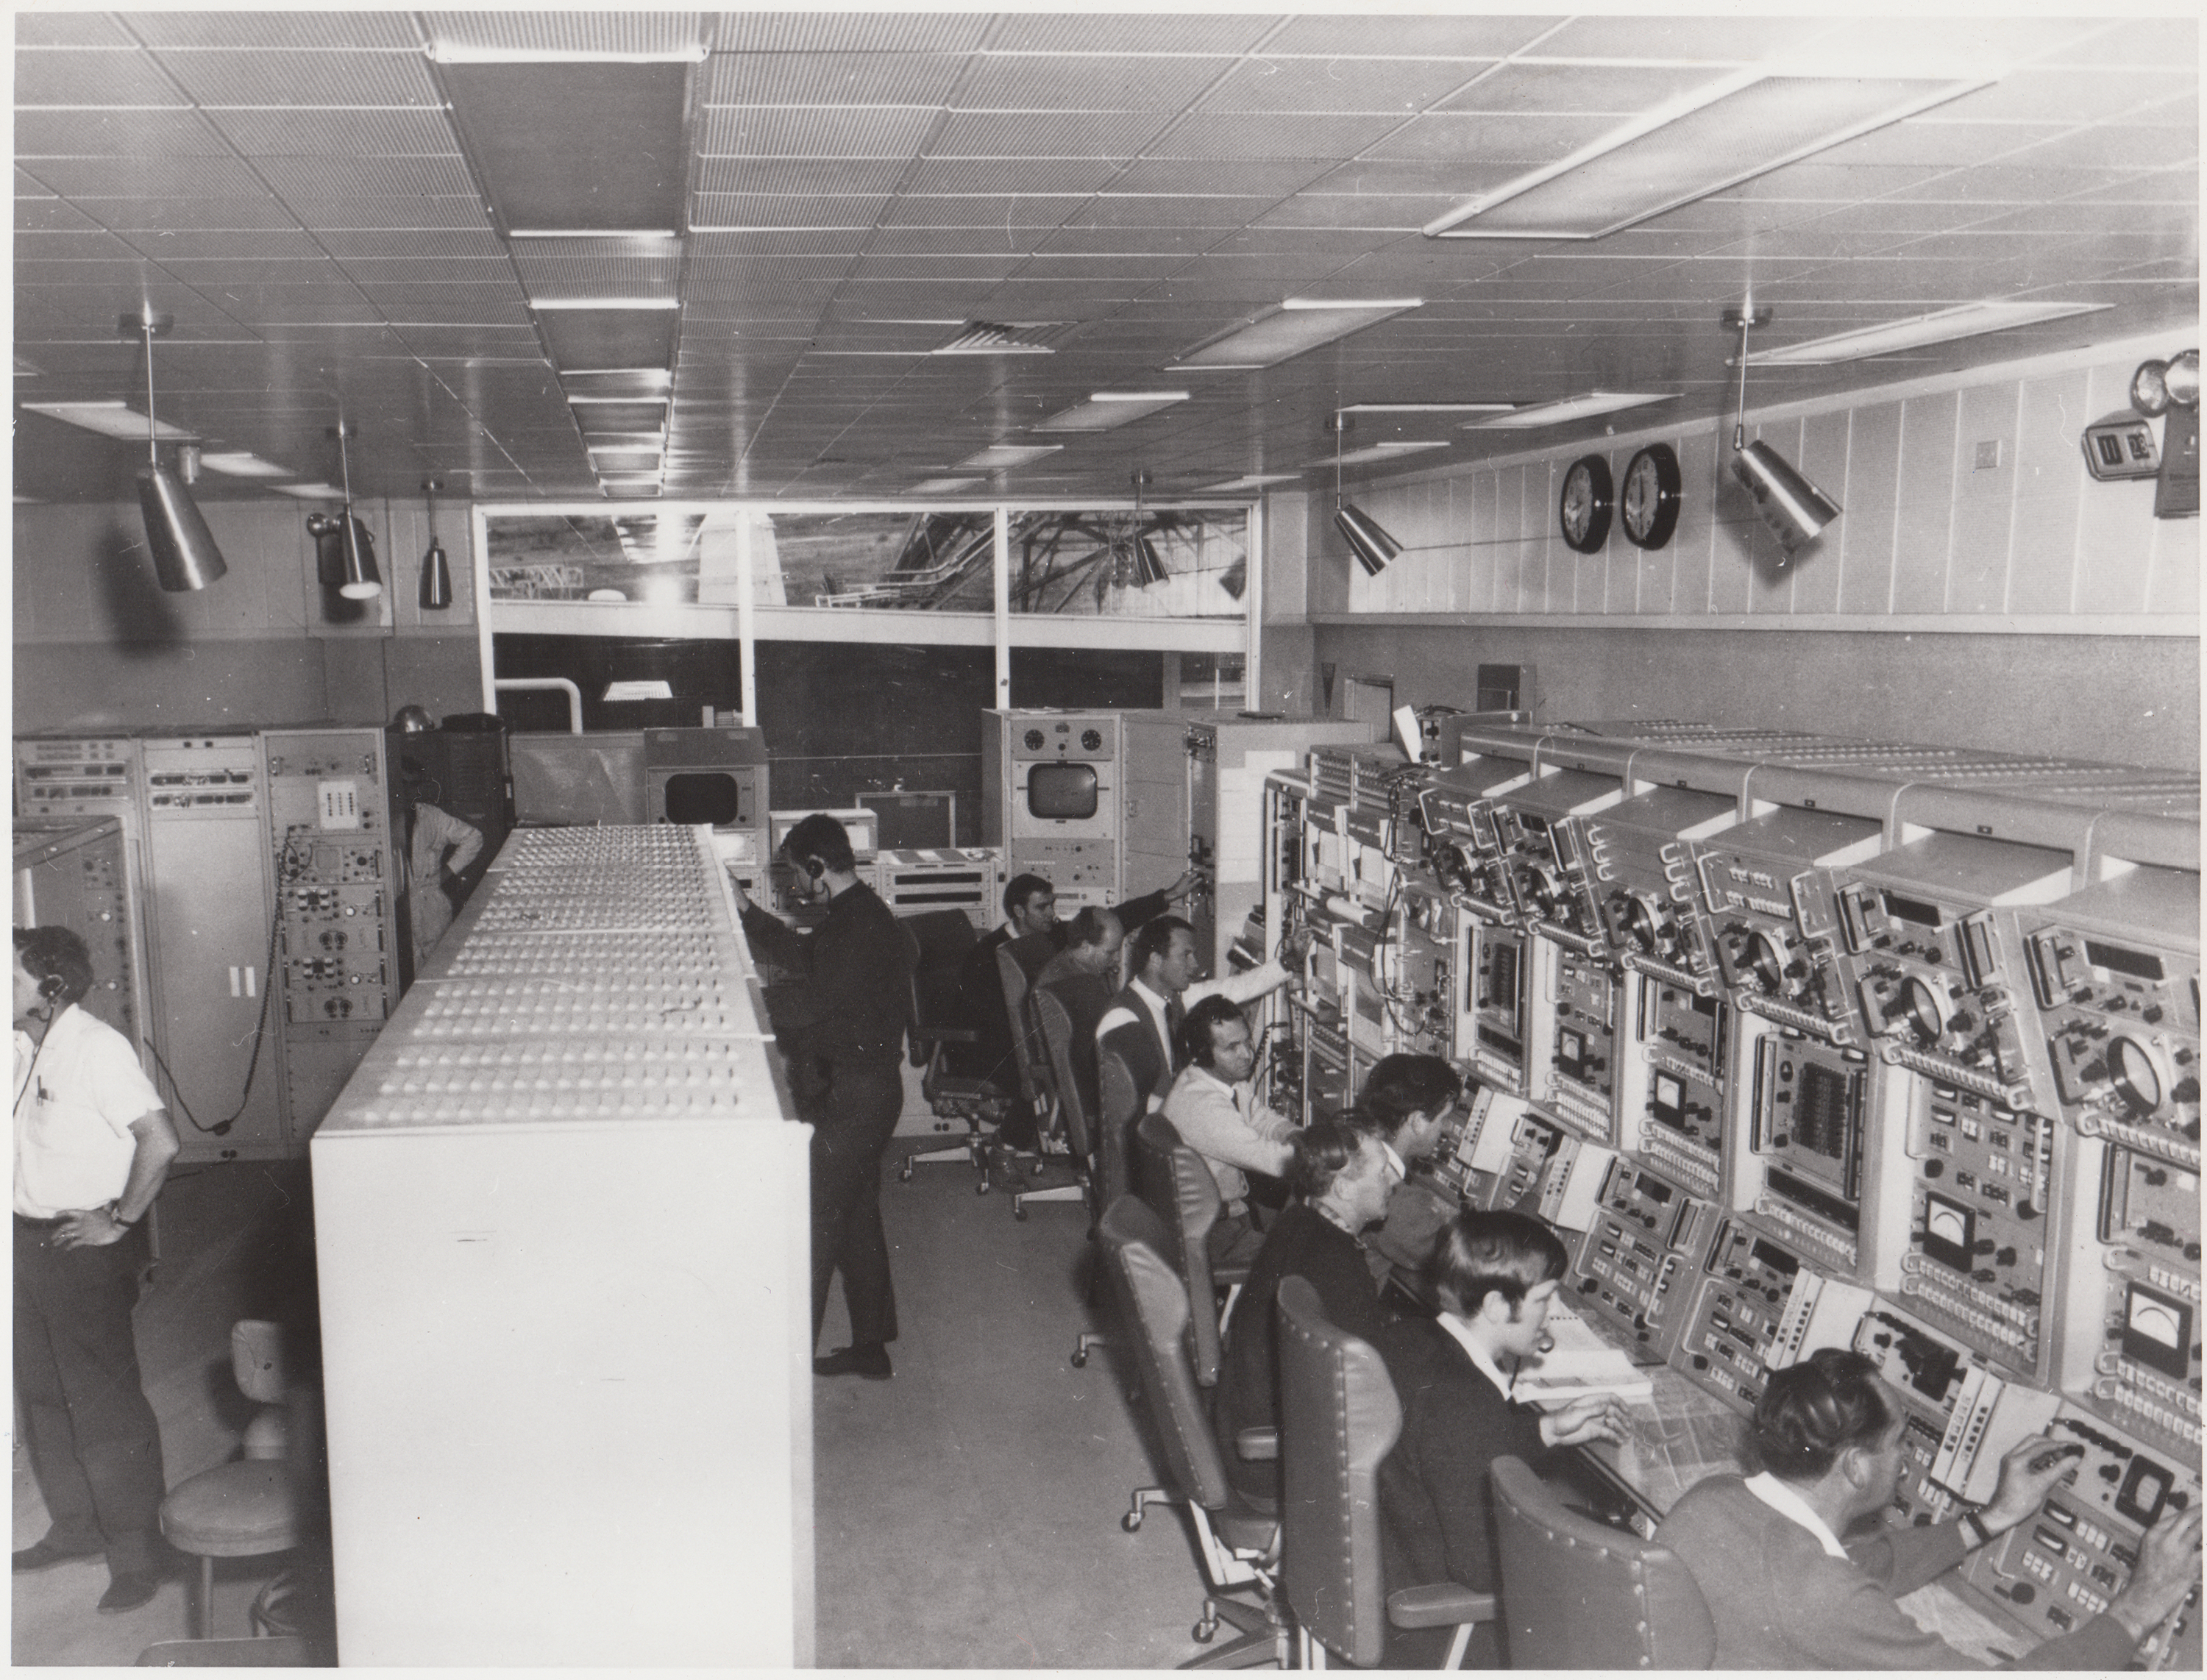 The control room for DSS42, the station's original antenna which started life as a 26-m dish antenna, and expanded to 34-m for later missions. Dozens of operators were on duty at any one time monitoring individual systems. Today a centralised control room operates all the station's antennas with a team of only 5 or 6, thanks to technological progress.